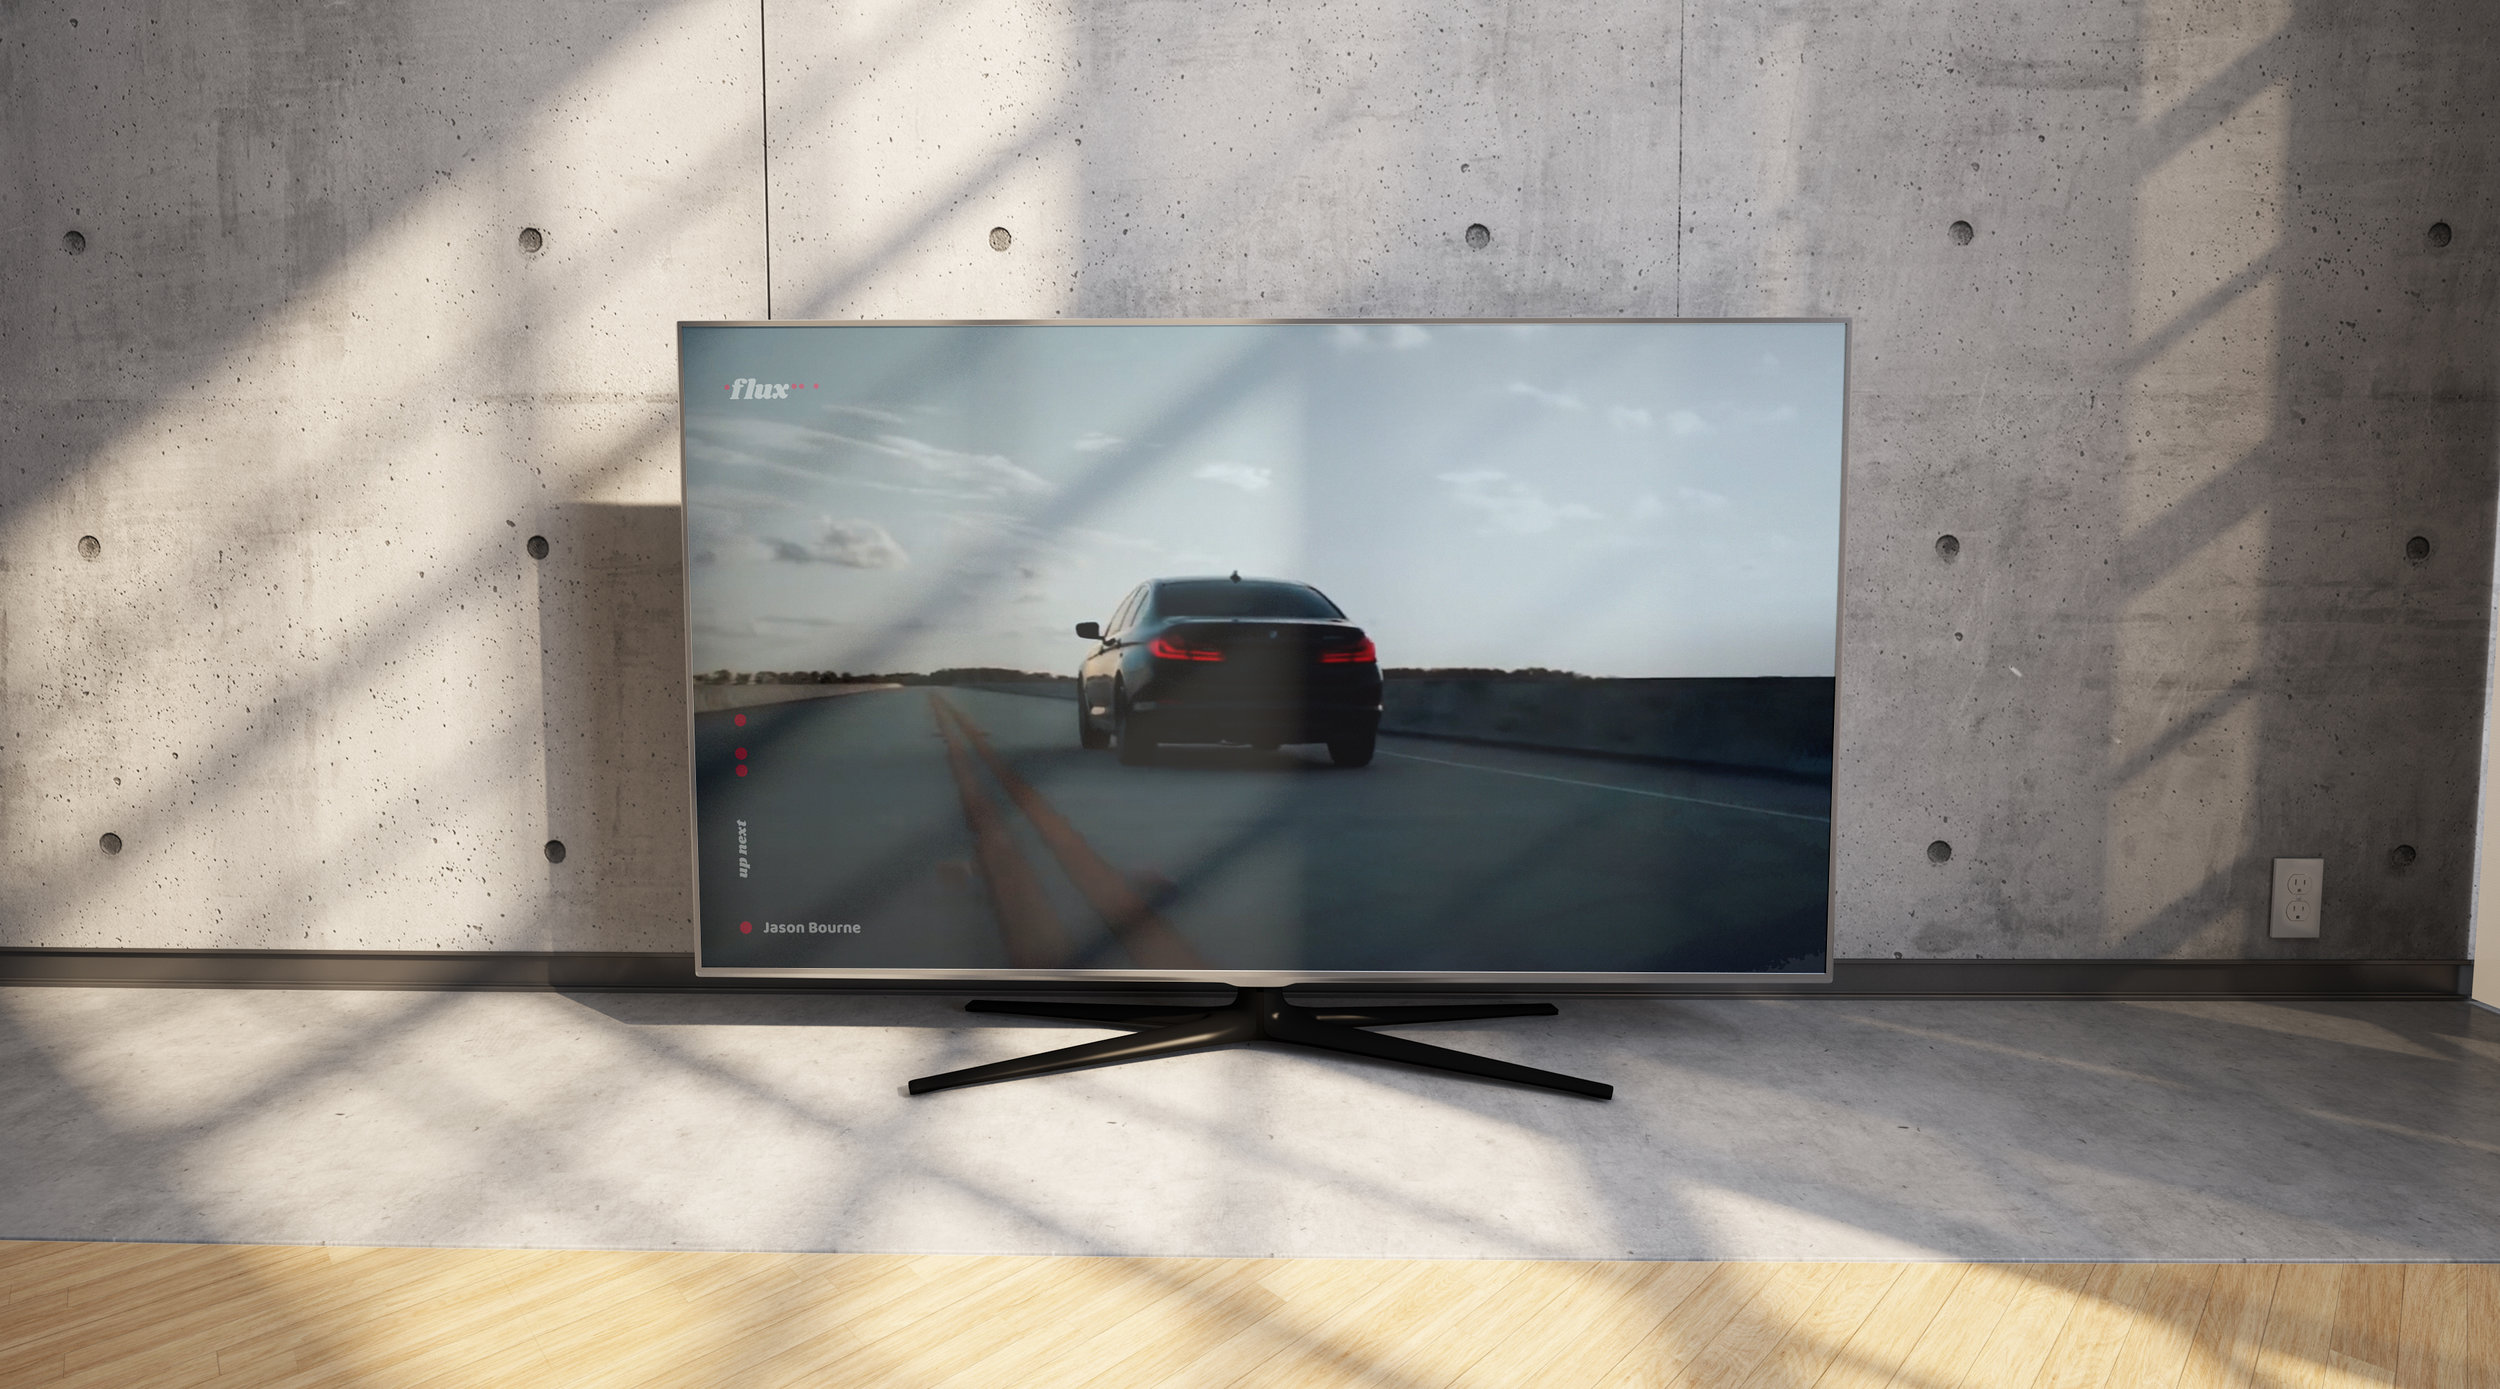 Realistic 4k TV Mockup - Anthony Boyd.jpg